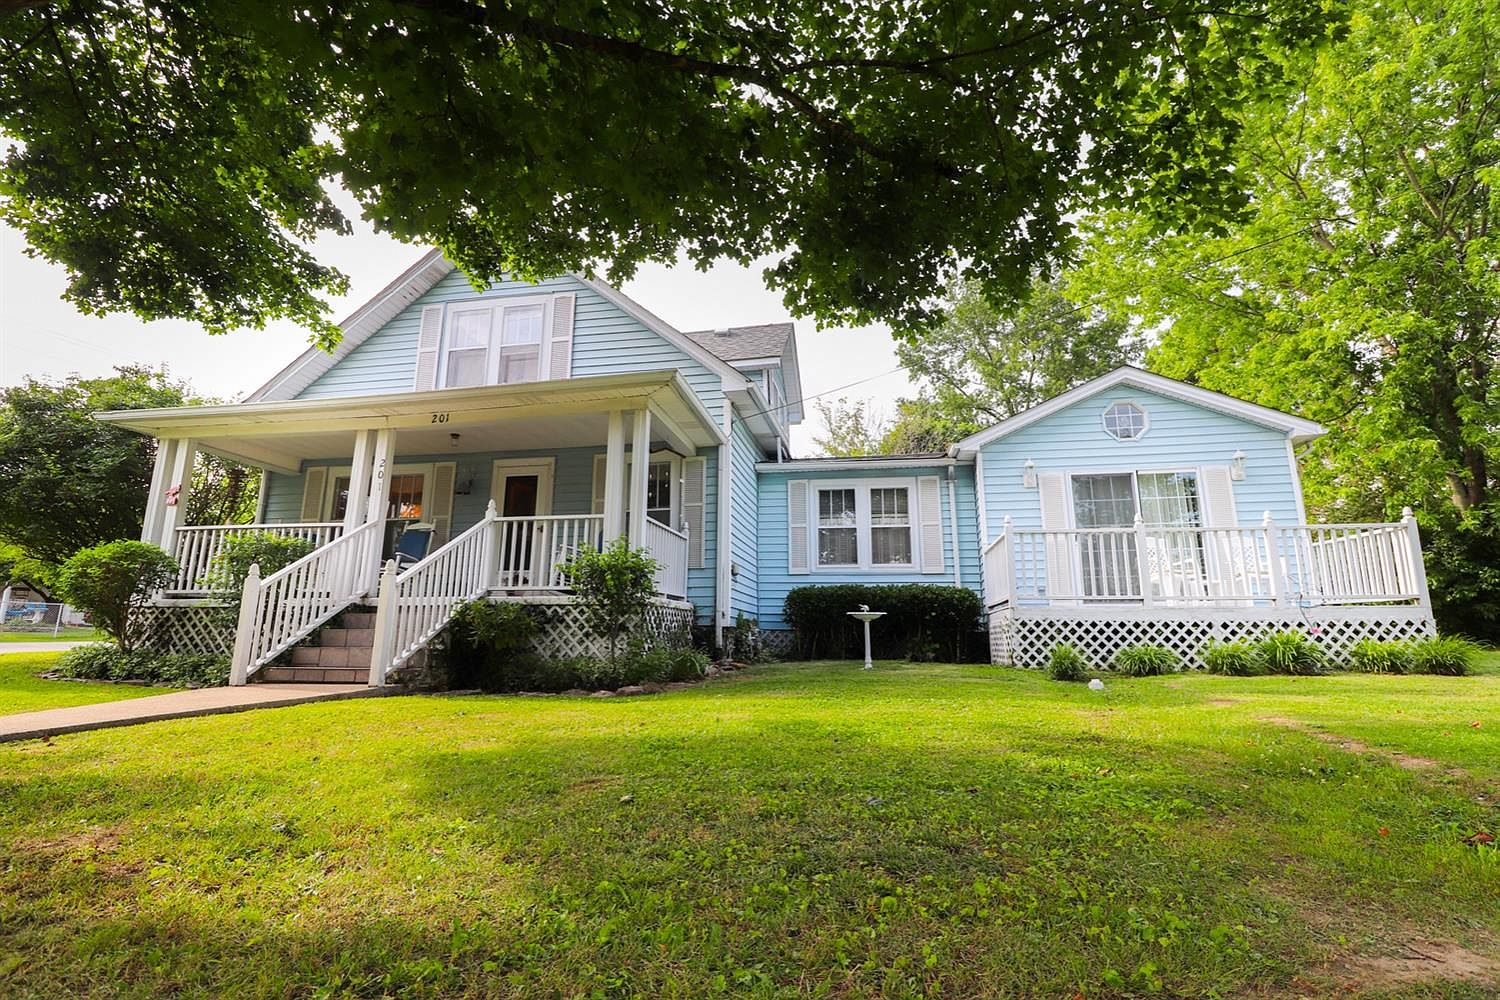 201 Glades St Berea Ky 40403 Mls 20014534 Zillow